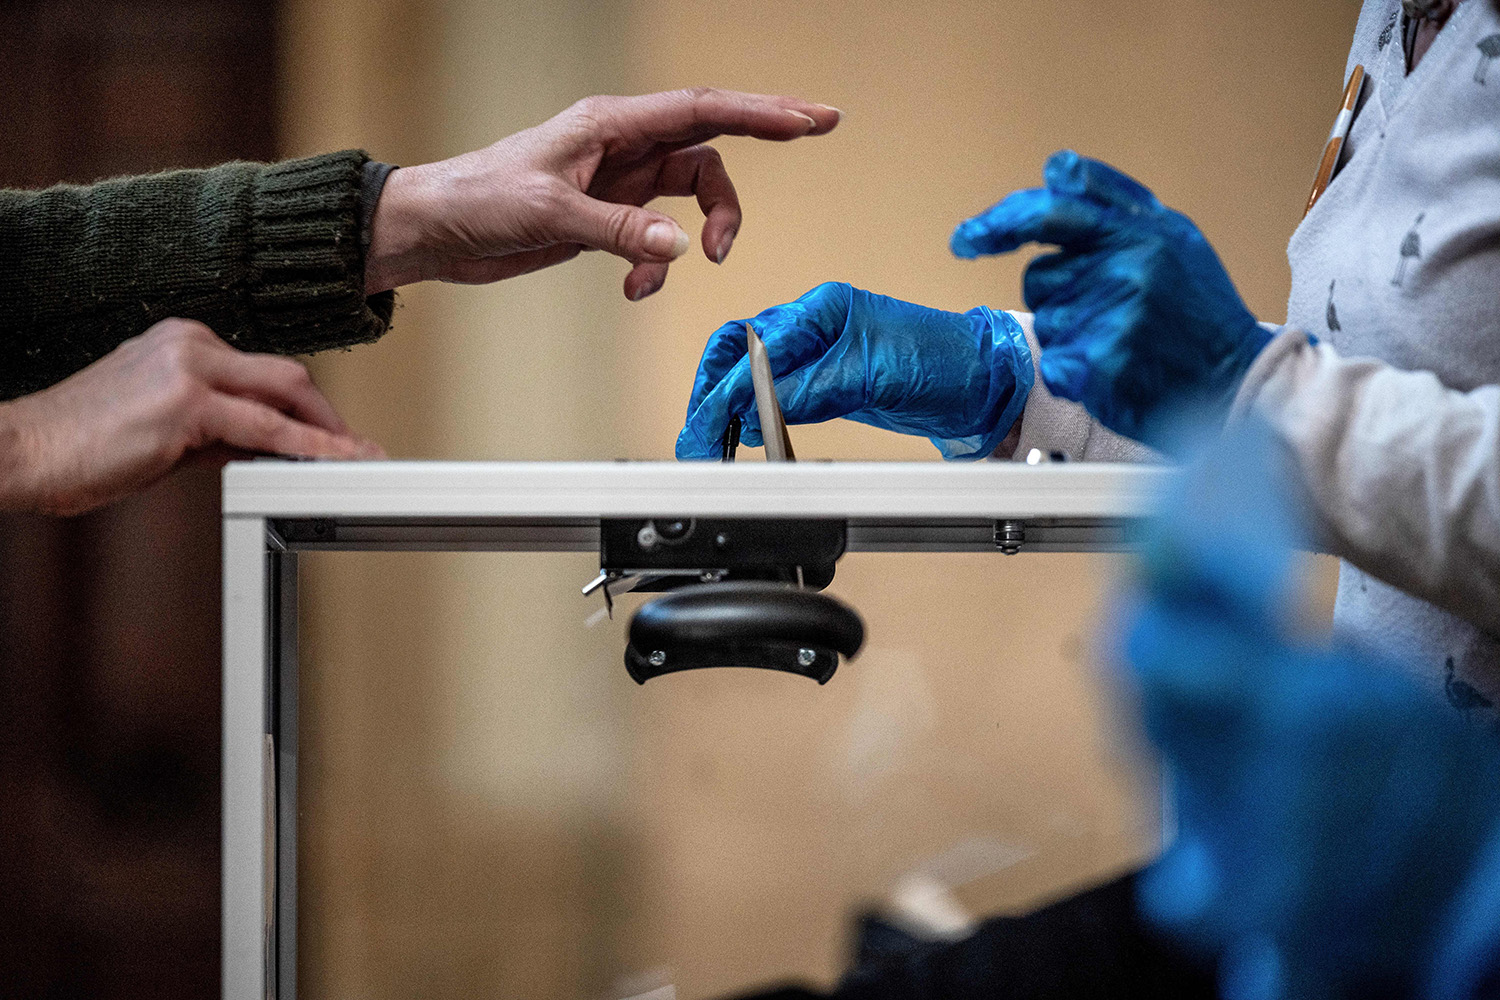 A voter casts their ballot at a polling station in Lyon, France, on March 15 during the first round of mayoral elections. With fears of coronavirus high, the country postponed the second round of local elections until June. JEFF PACHOUD/AFP via Getty Images